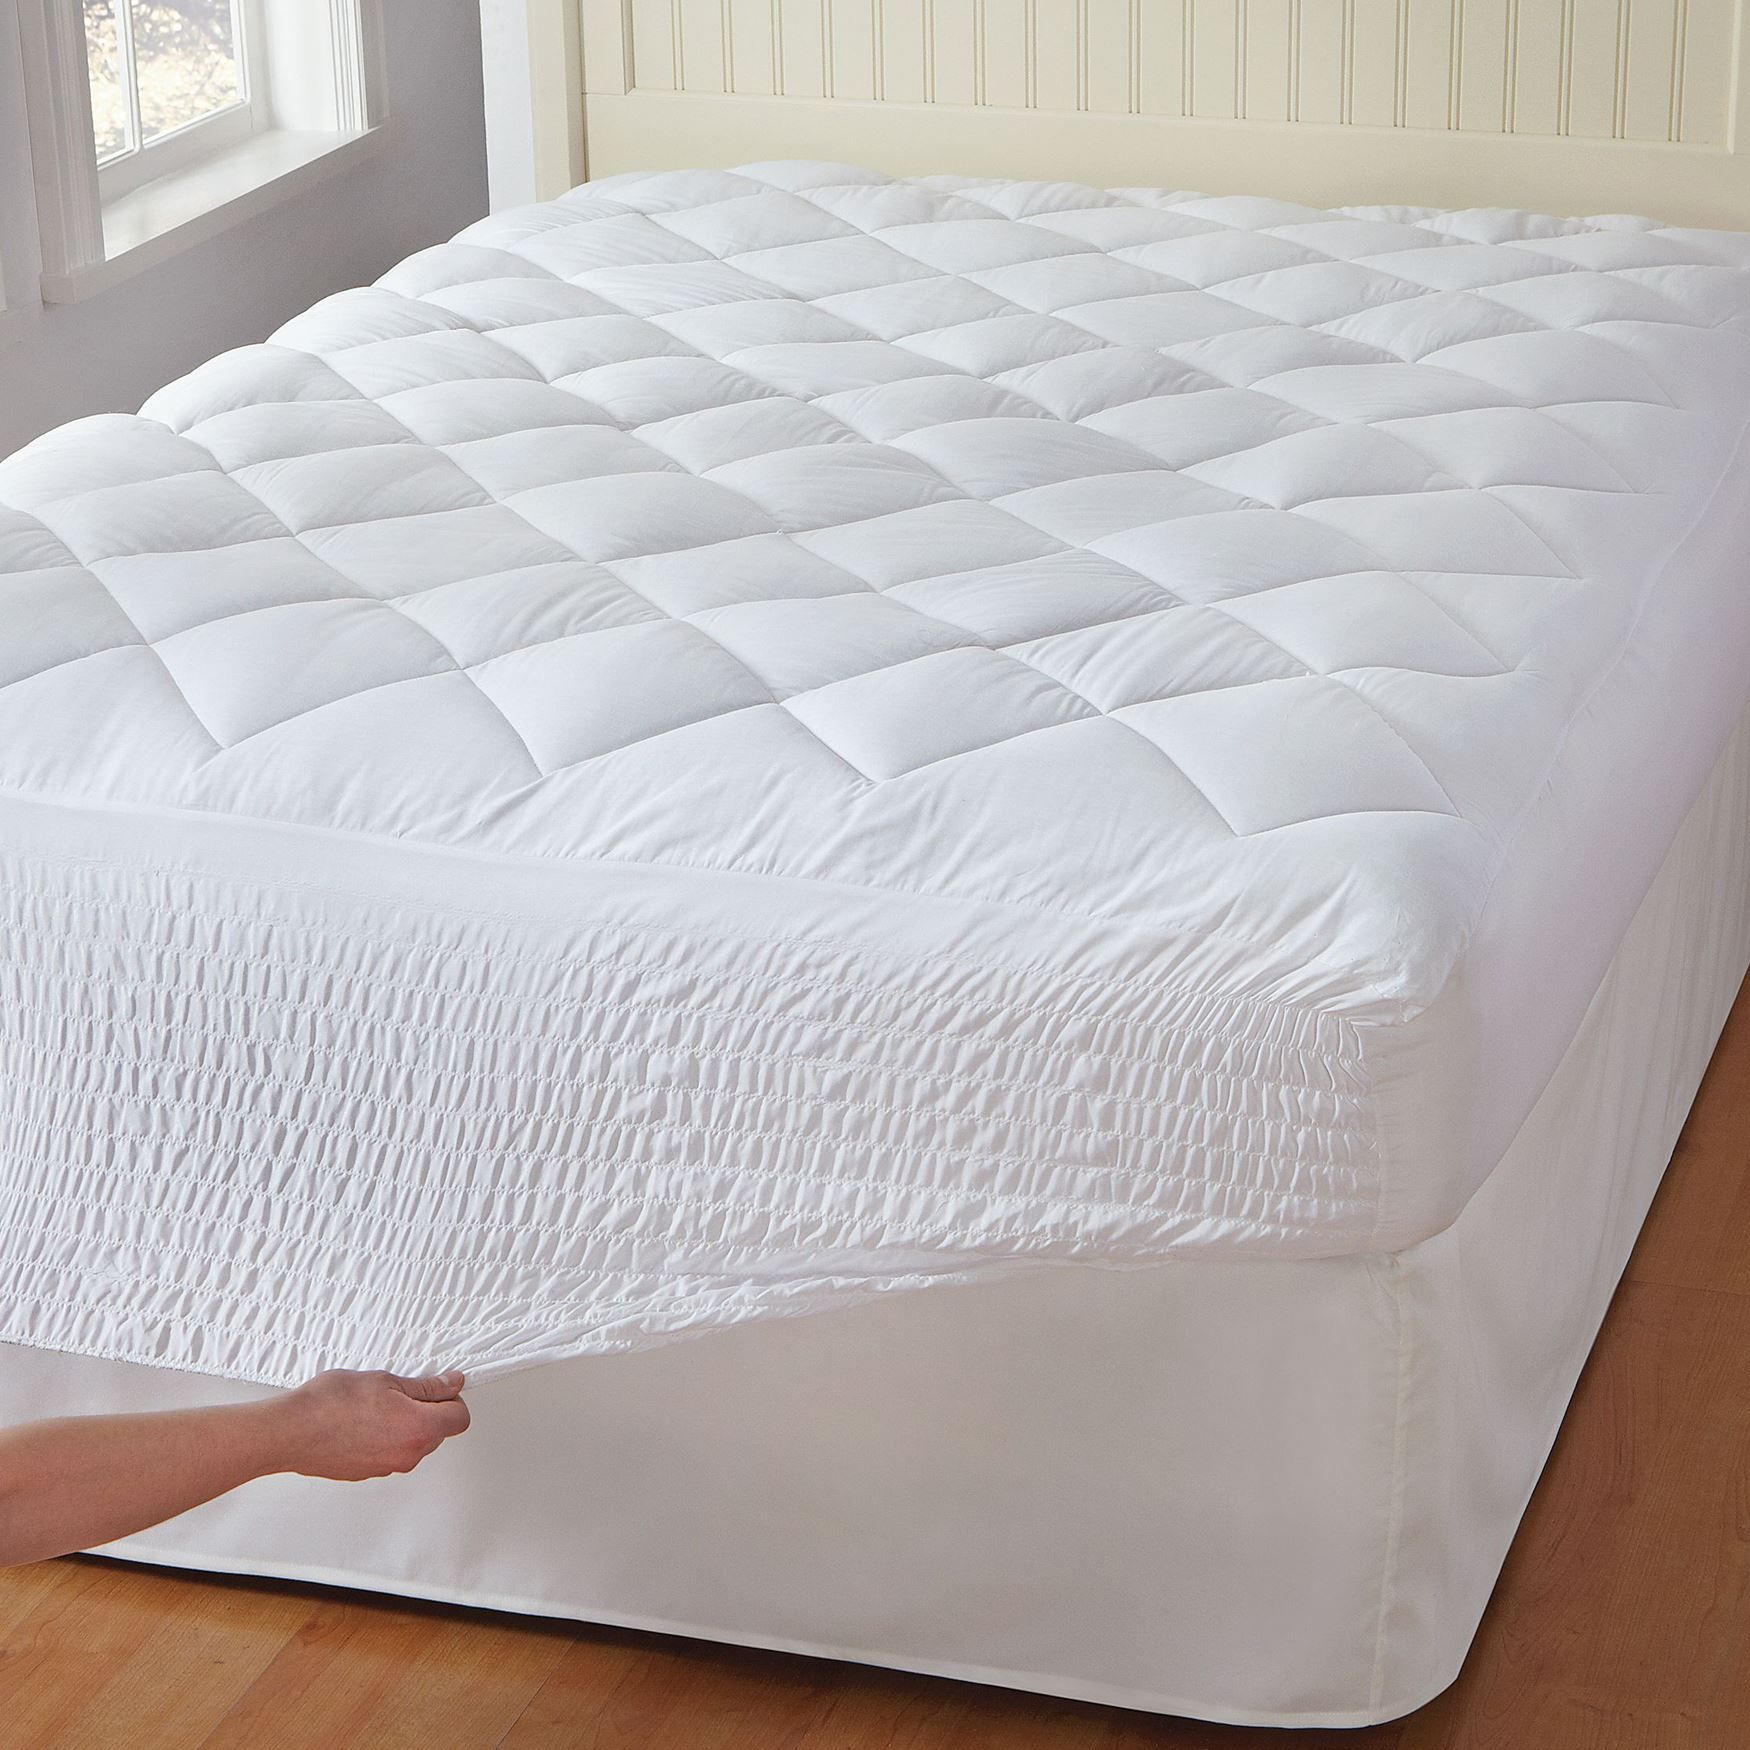 Brentwood home oceano wrapped innerspring california king mattress brentwood home oceano wrapped innerspring california king mattress reviews best mattresses 2018 pinterest mattress biocorpaavc Choice Image